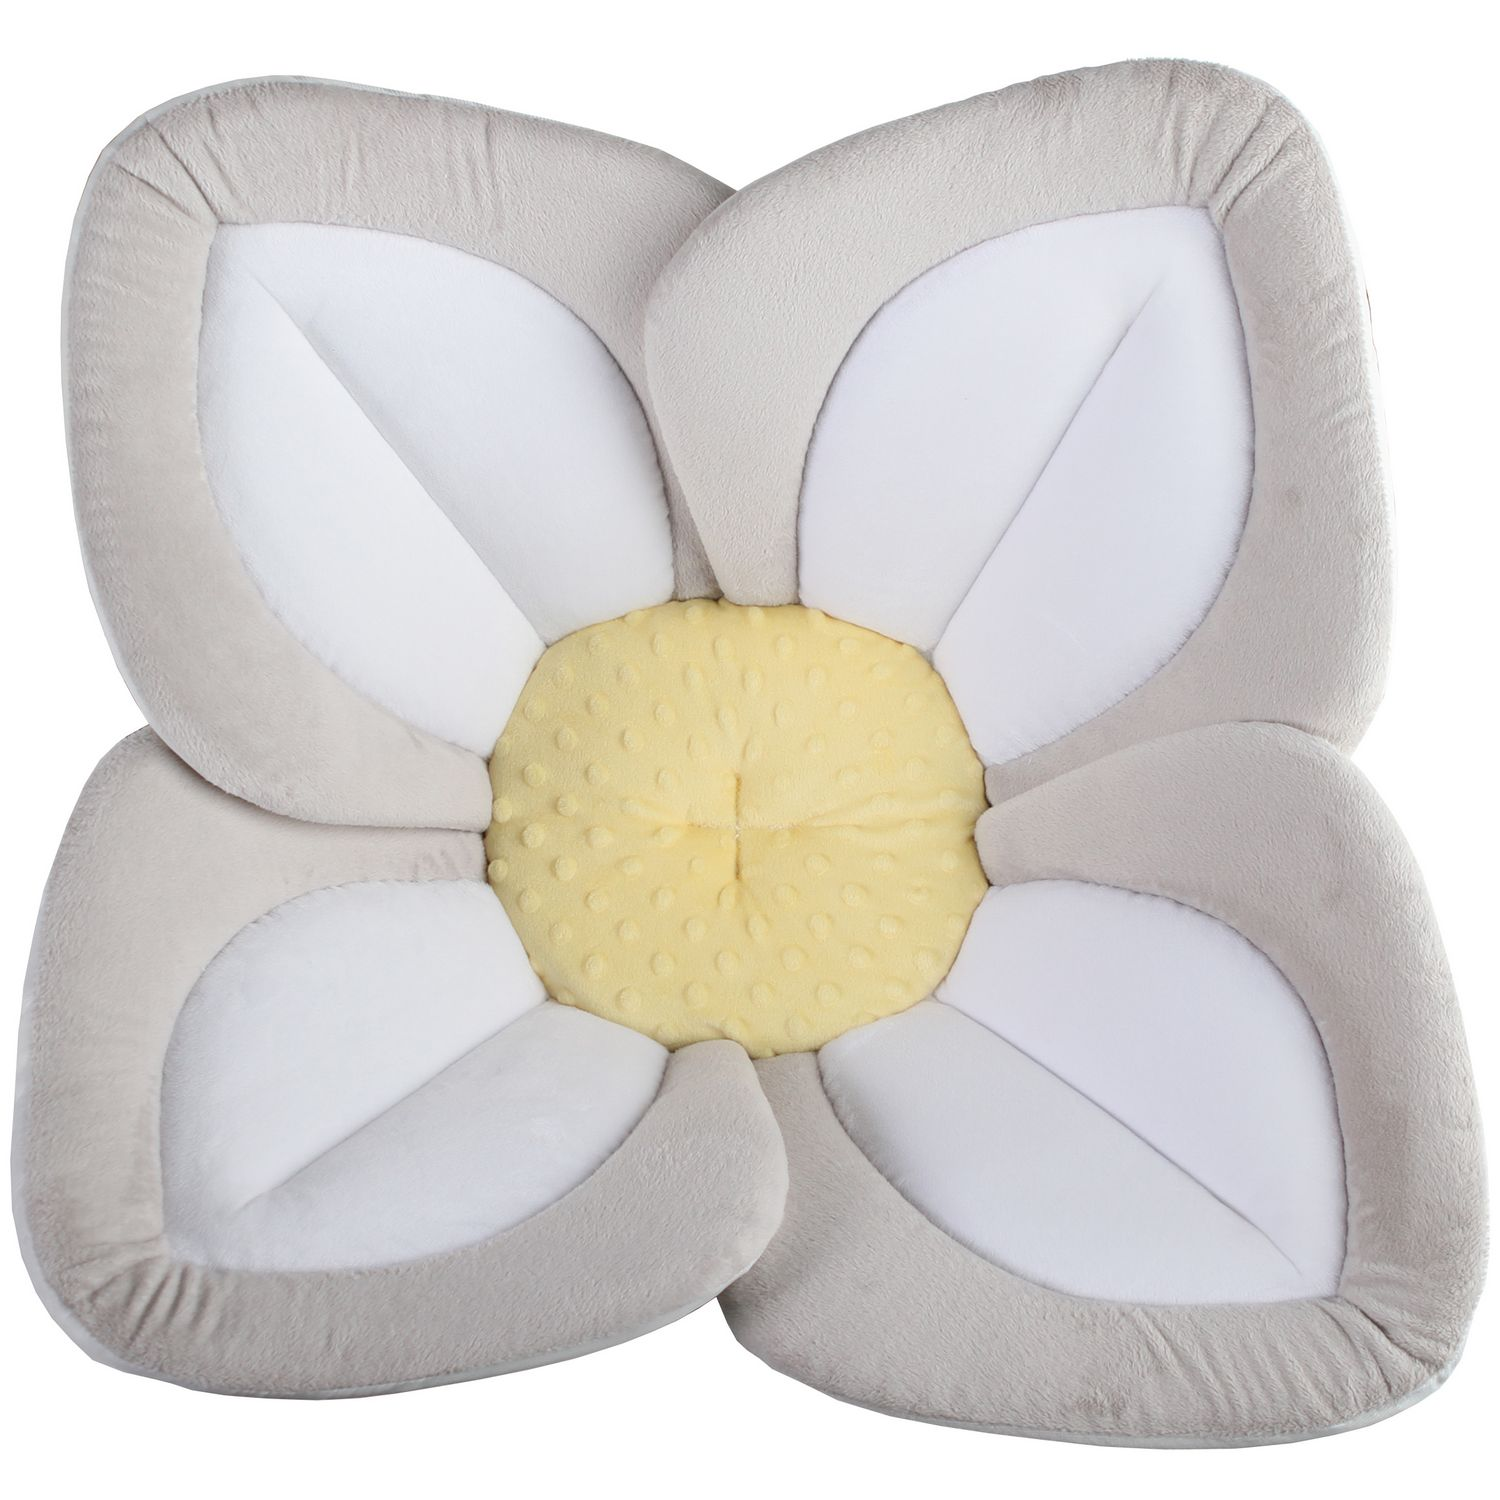 Blooming Bath Infant Insert - Lotus - White Yellow